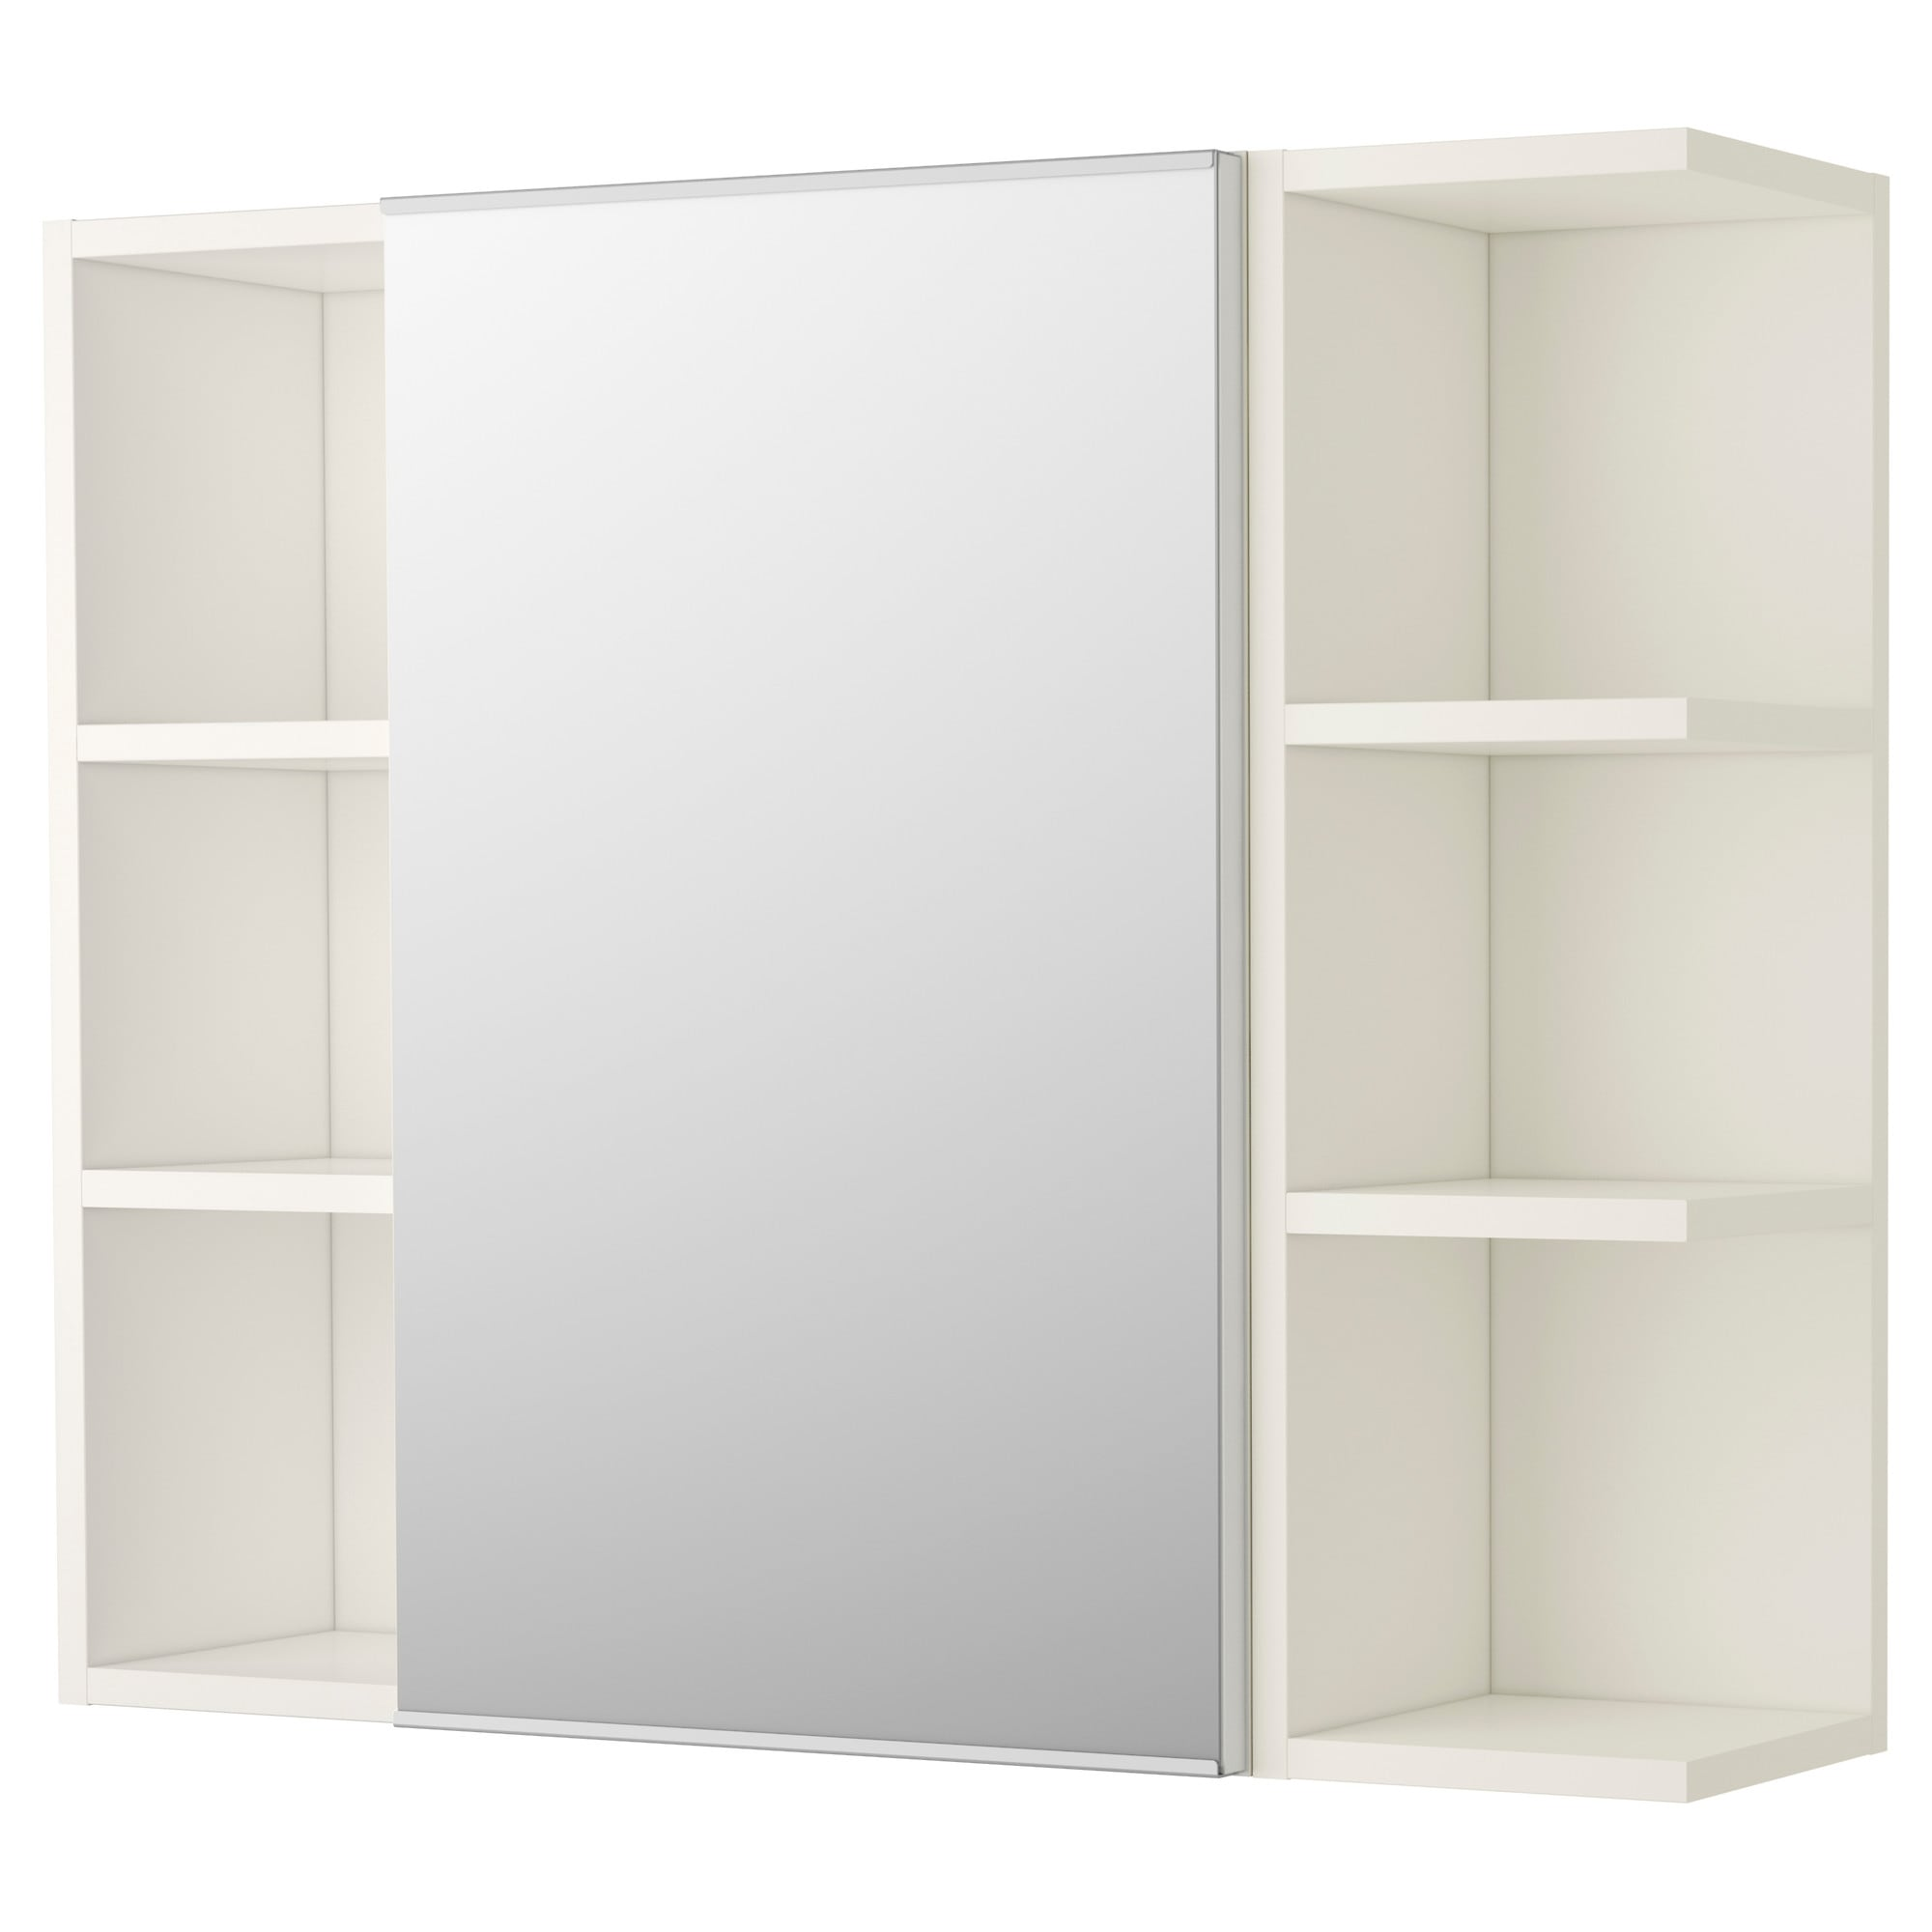 Bathroom Mirror Door lillÅngen mirror cabinet 1 door/2 end units - white - ikea